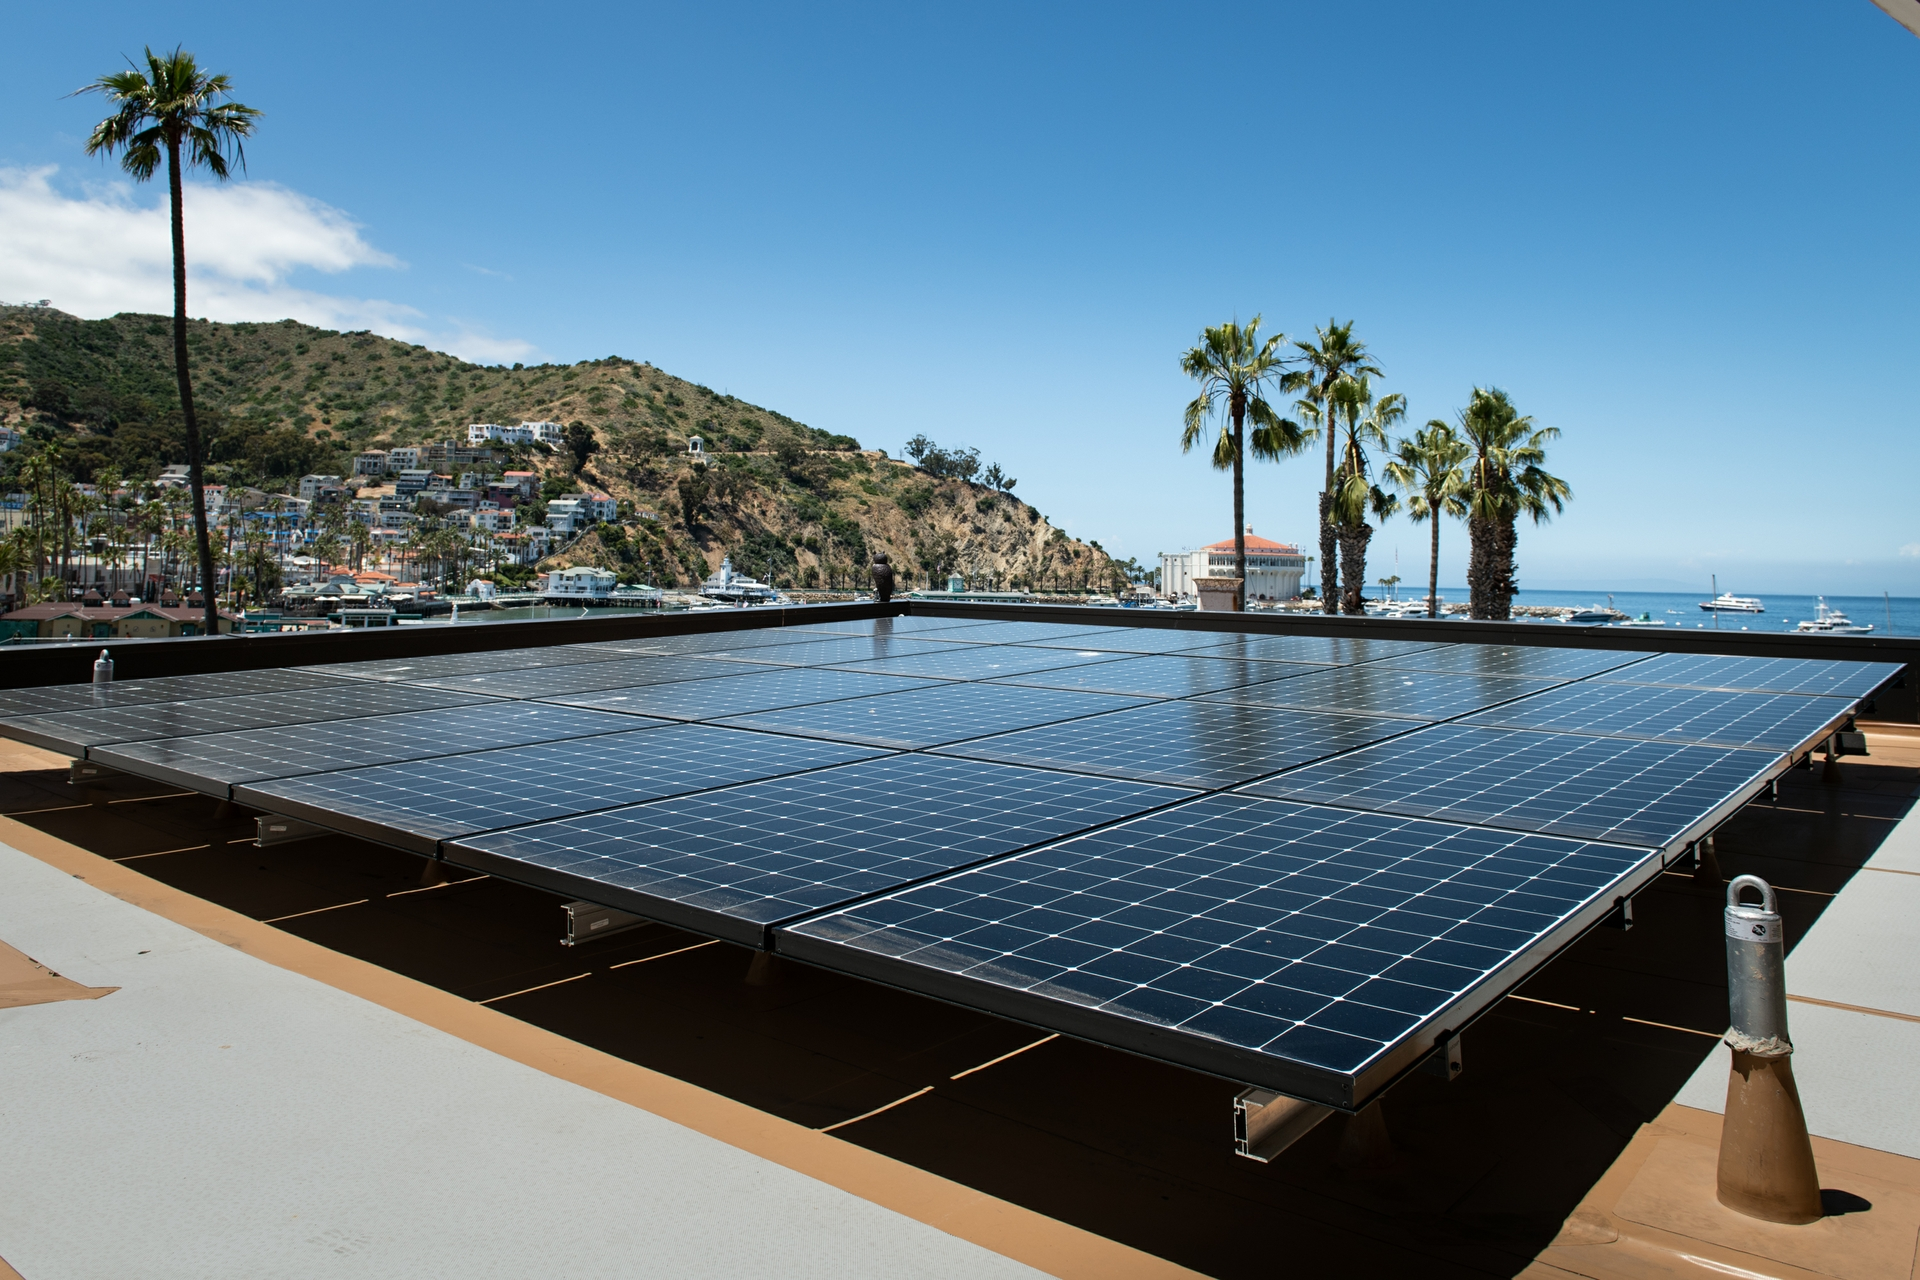 Renewable energy is part of the formula to reduce emissions on Catalina by at least 63%